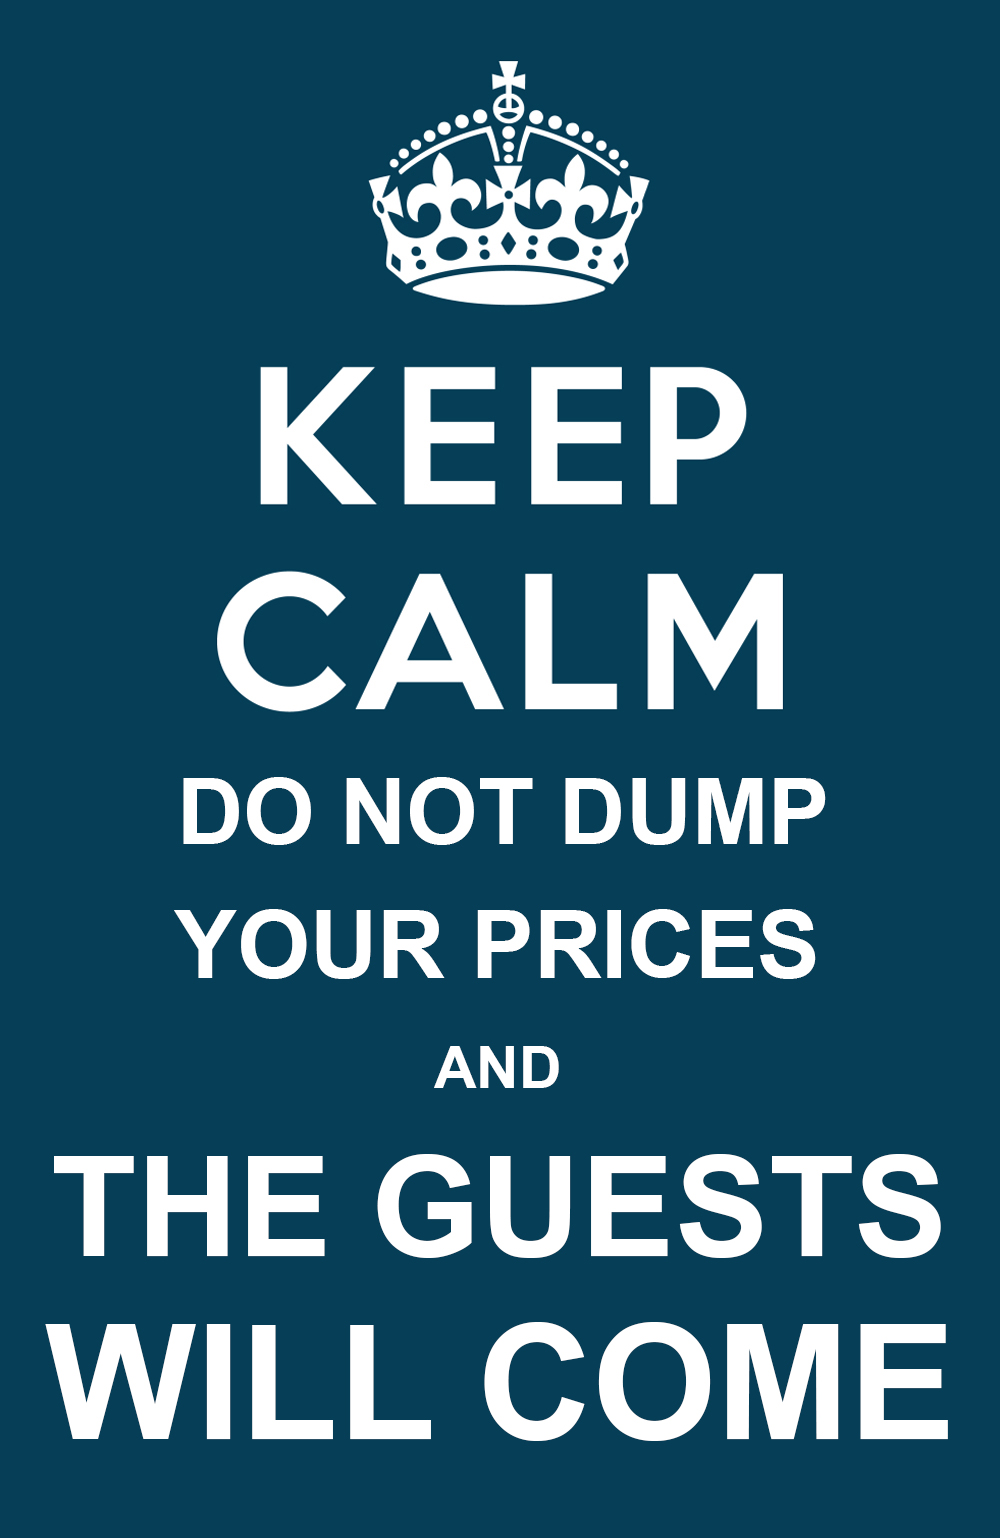 Keep calm do not dump your prices and the guests will come